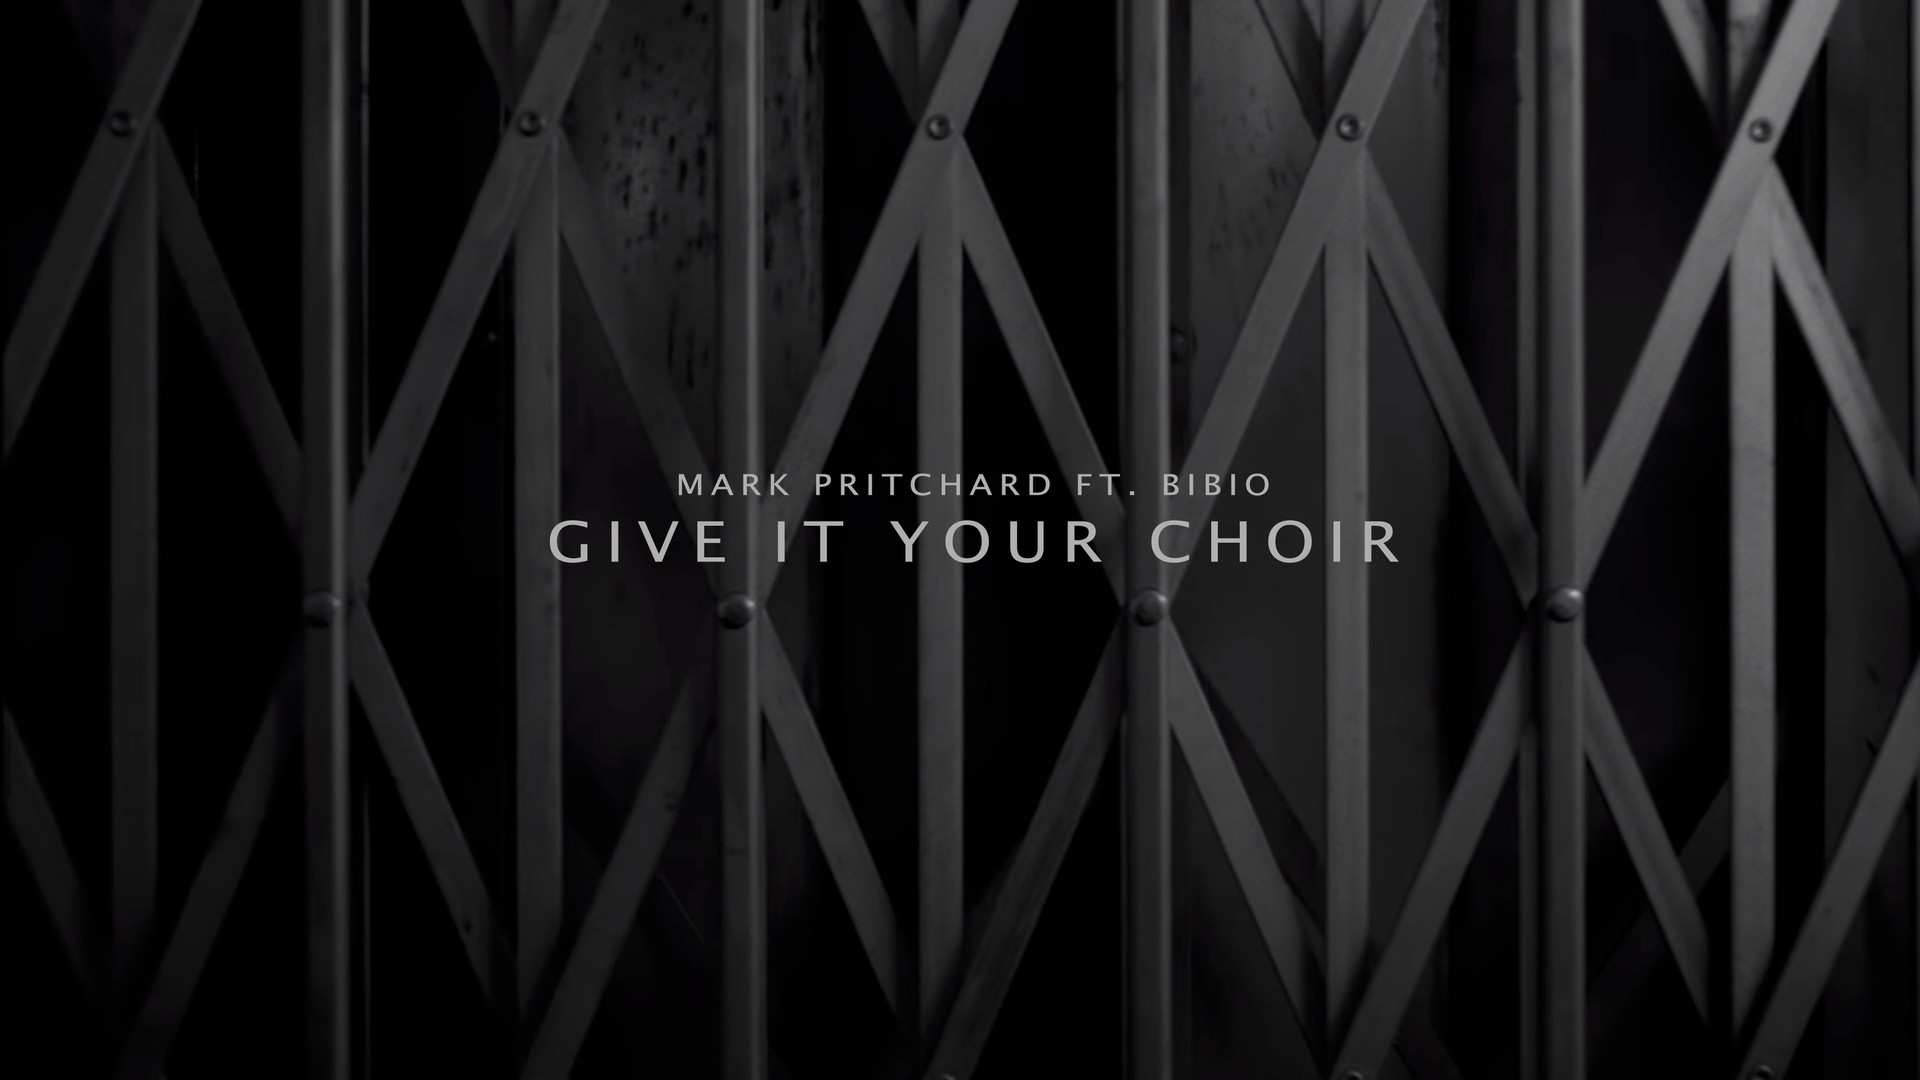 Mark Pritchard, 'Give it your choir' music video, Dec 2016